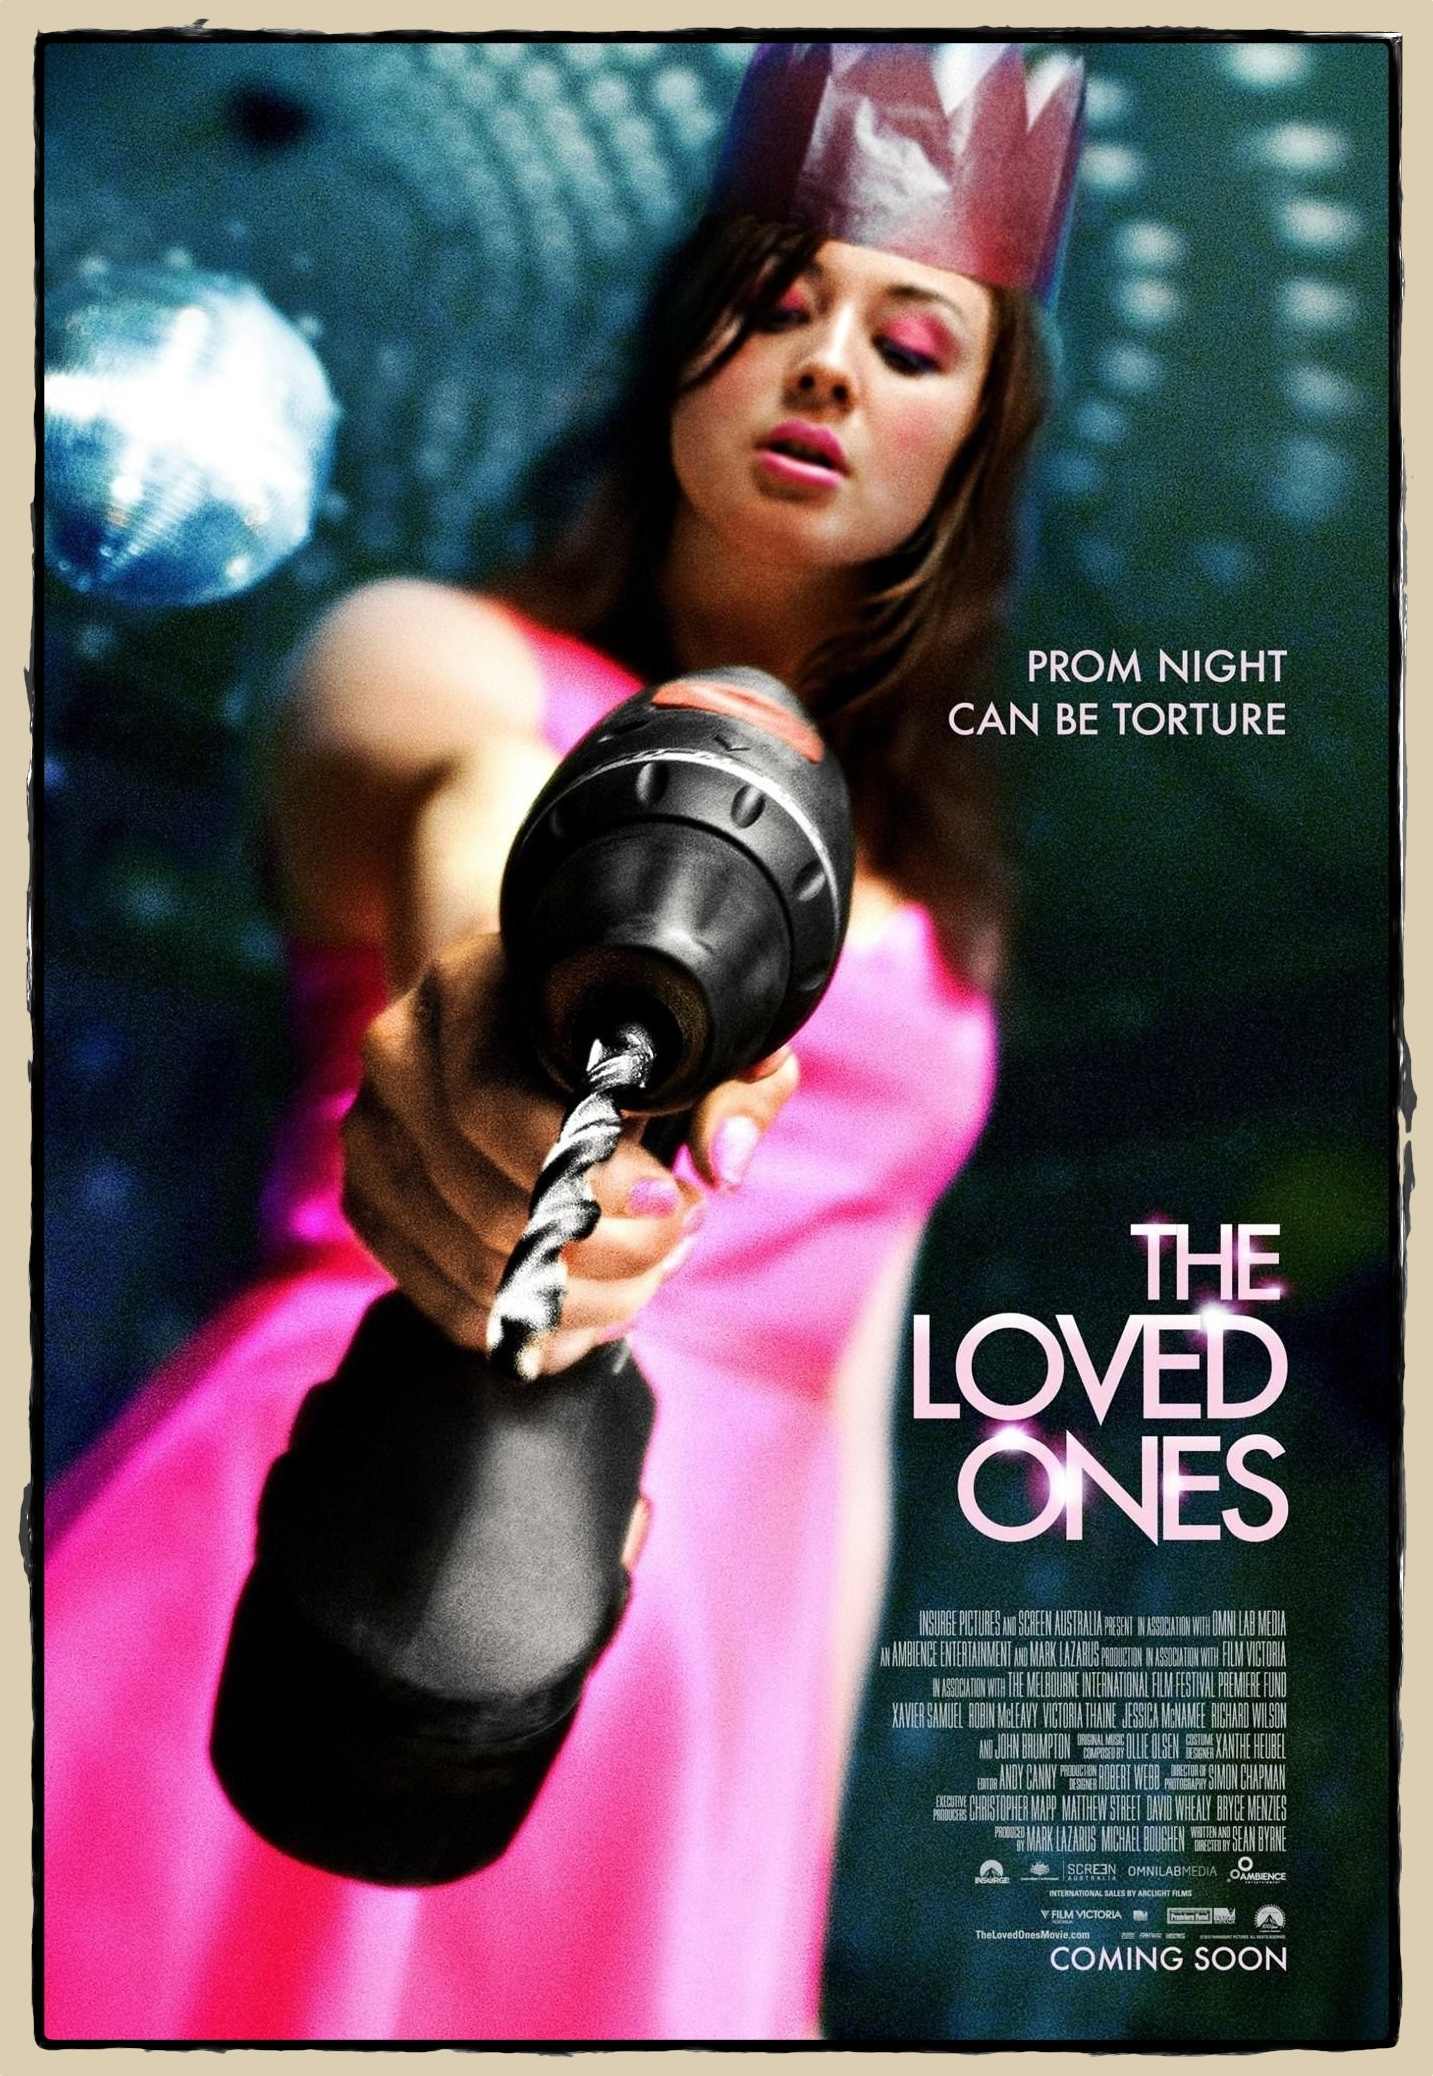 the-loved-ones-movie-poster